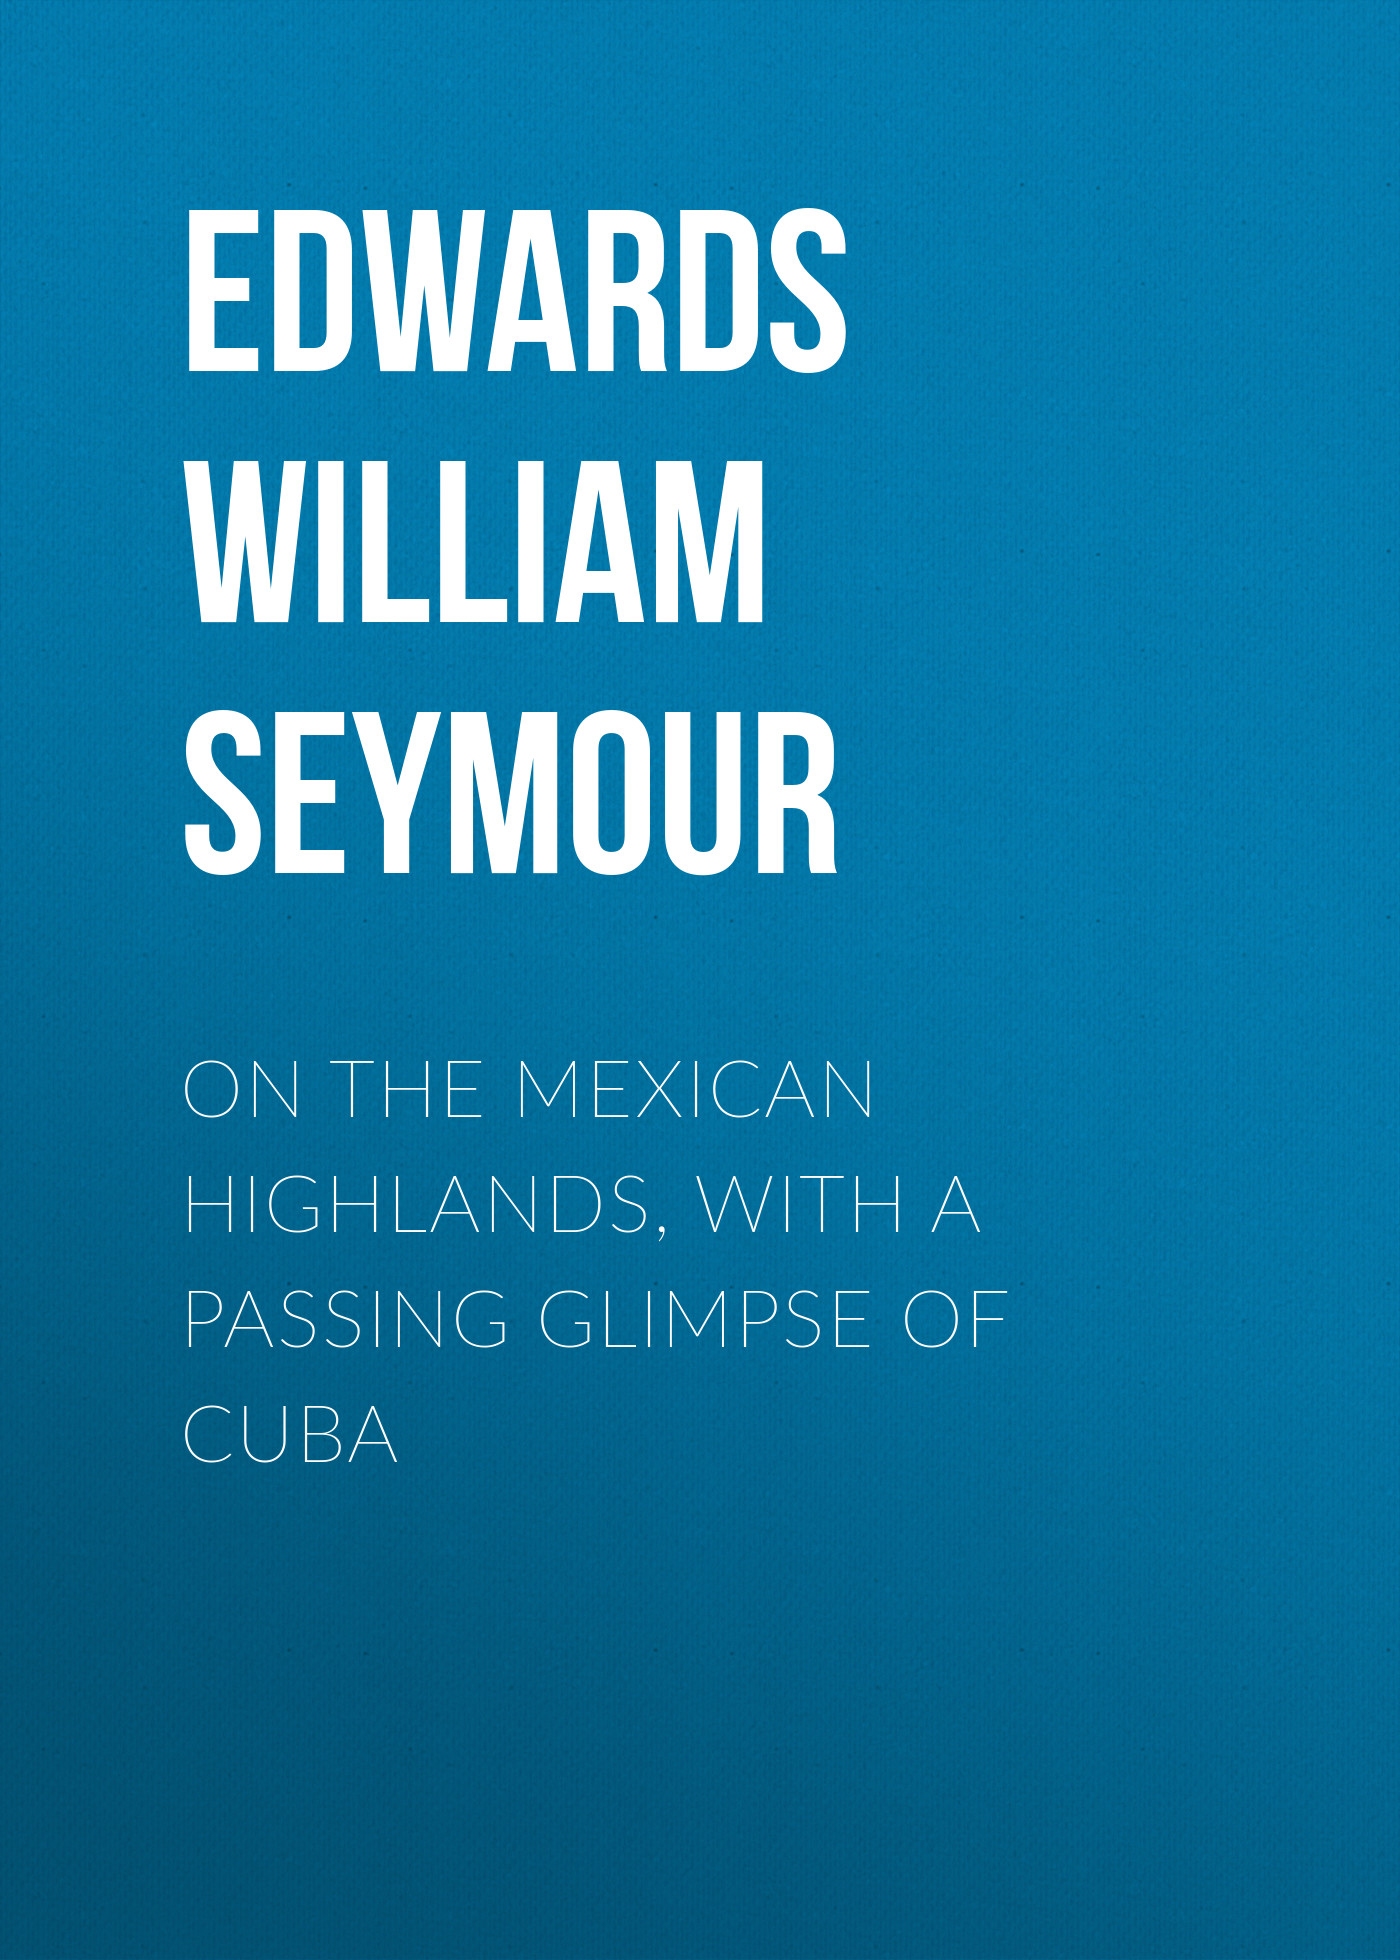 Edwards William Seymour On the Mexican Highlands, with a Passing Glimpse of Cuba passing